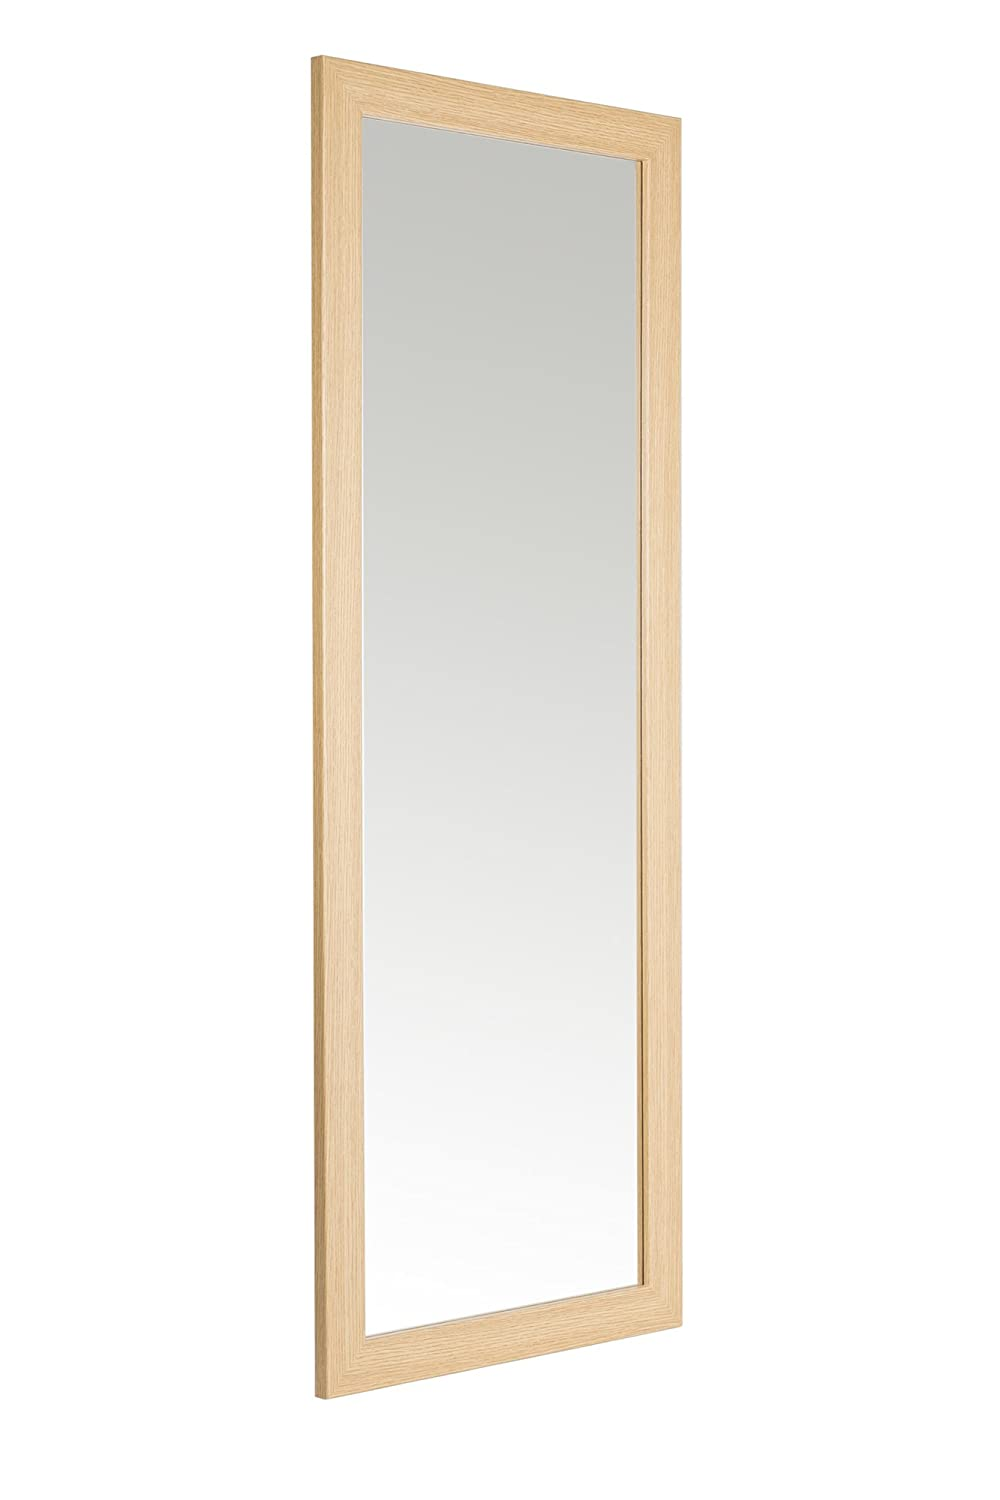 38 x 99cm Oak Effect Framed Mirror with Wall Hanging Fixings